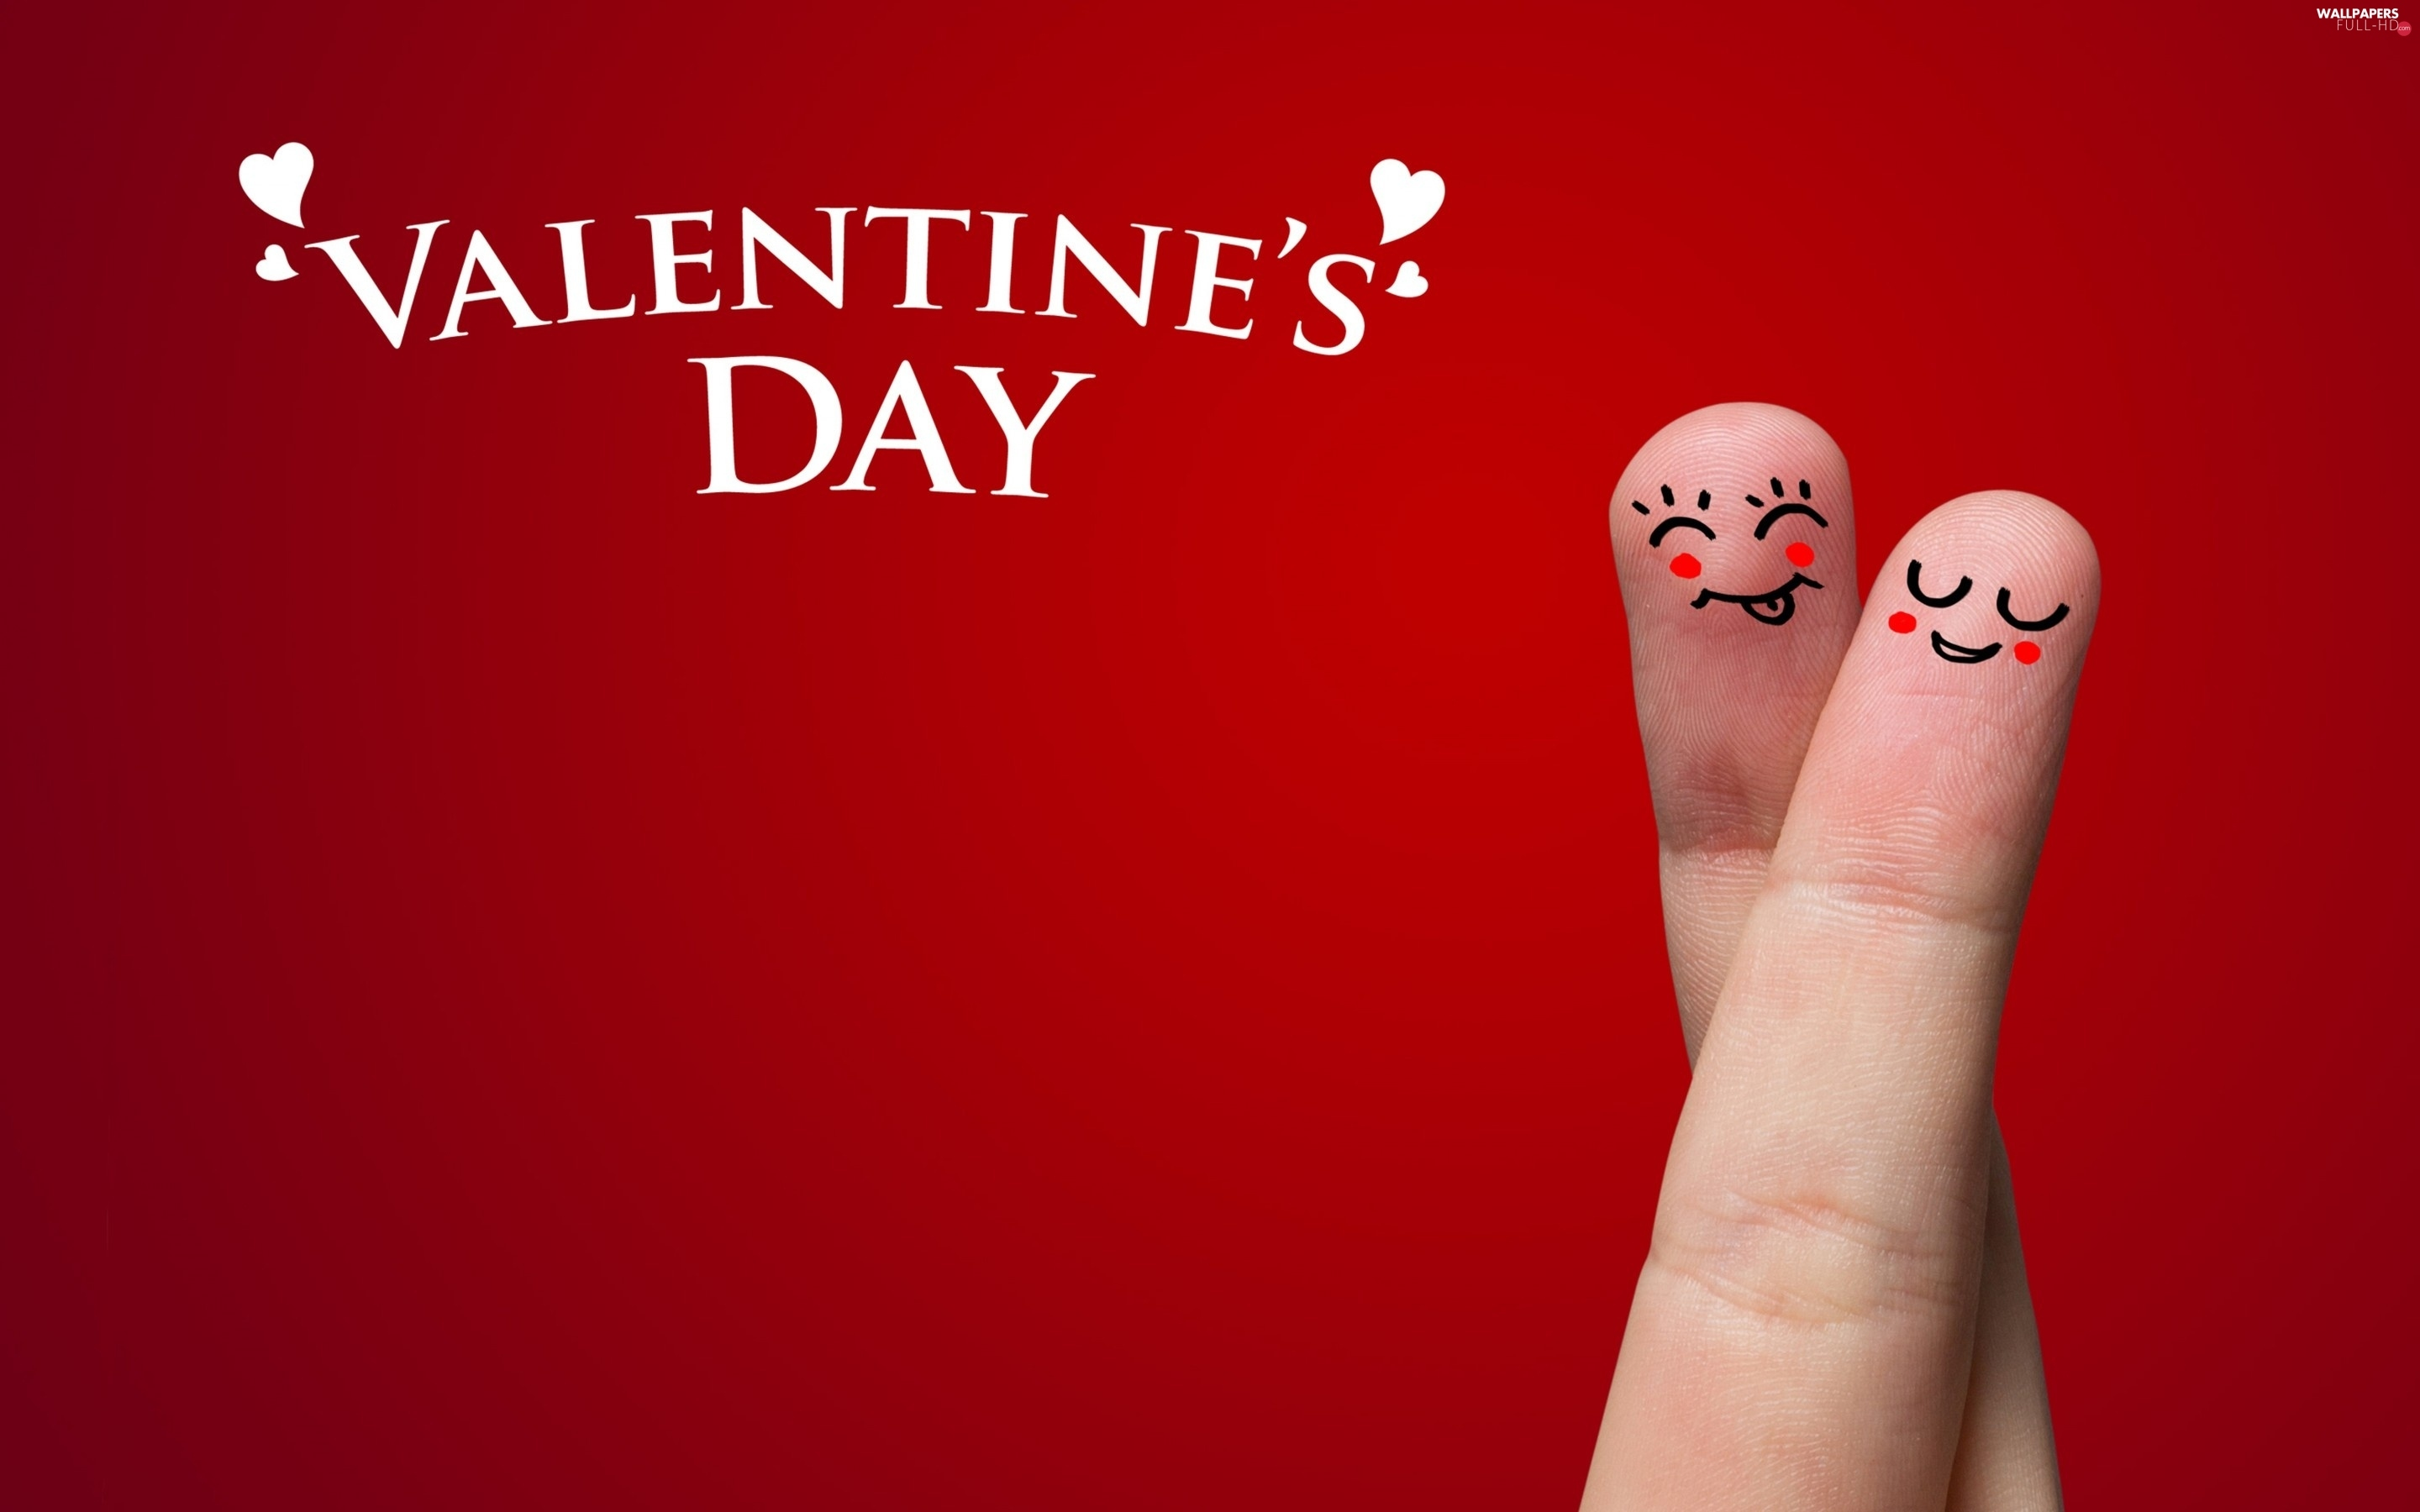 Two cars, finger, Valentine